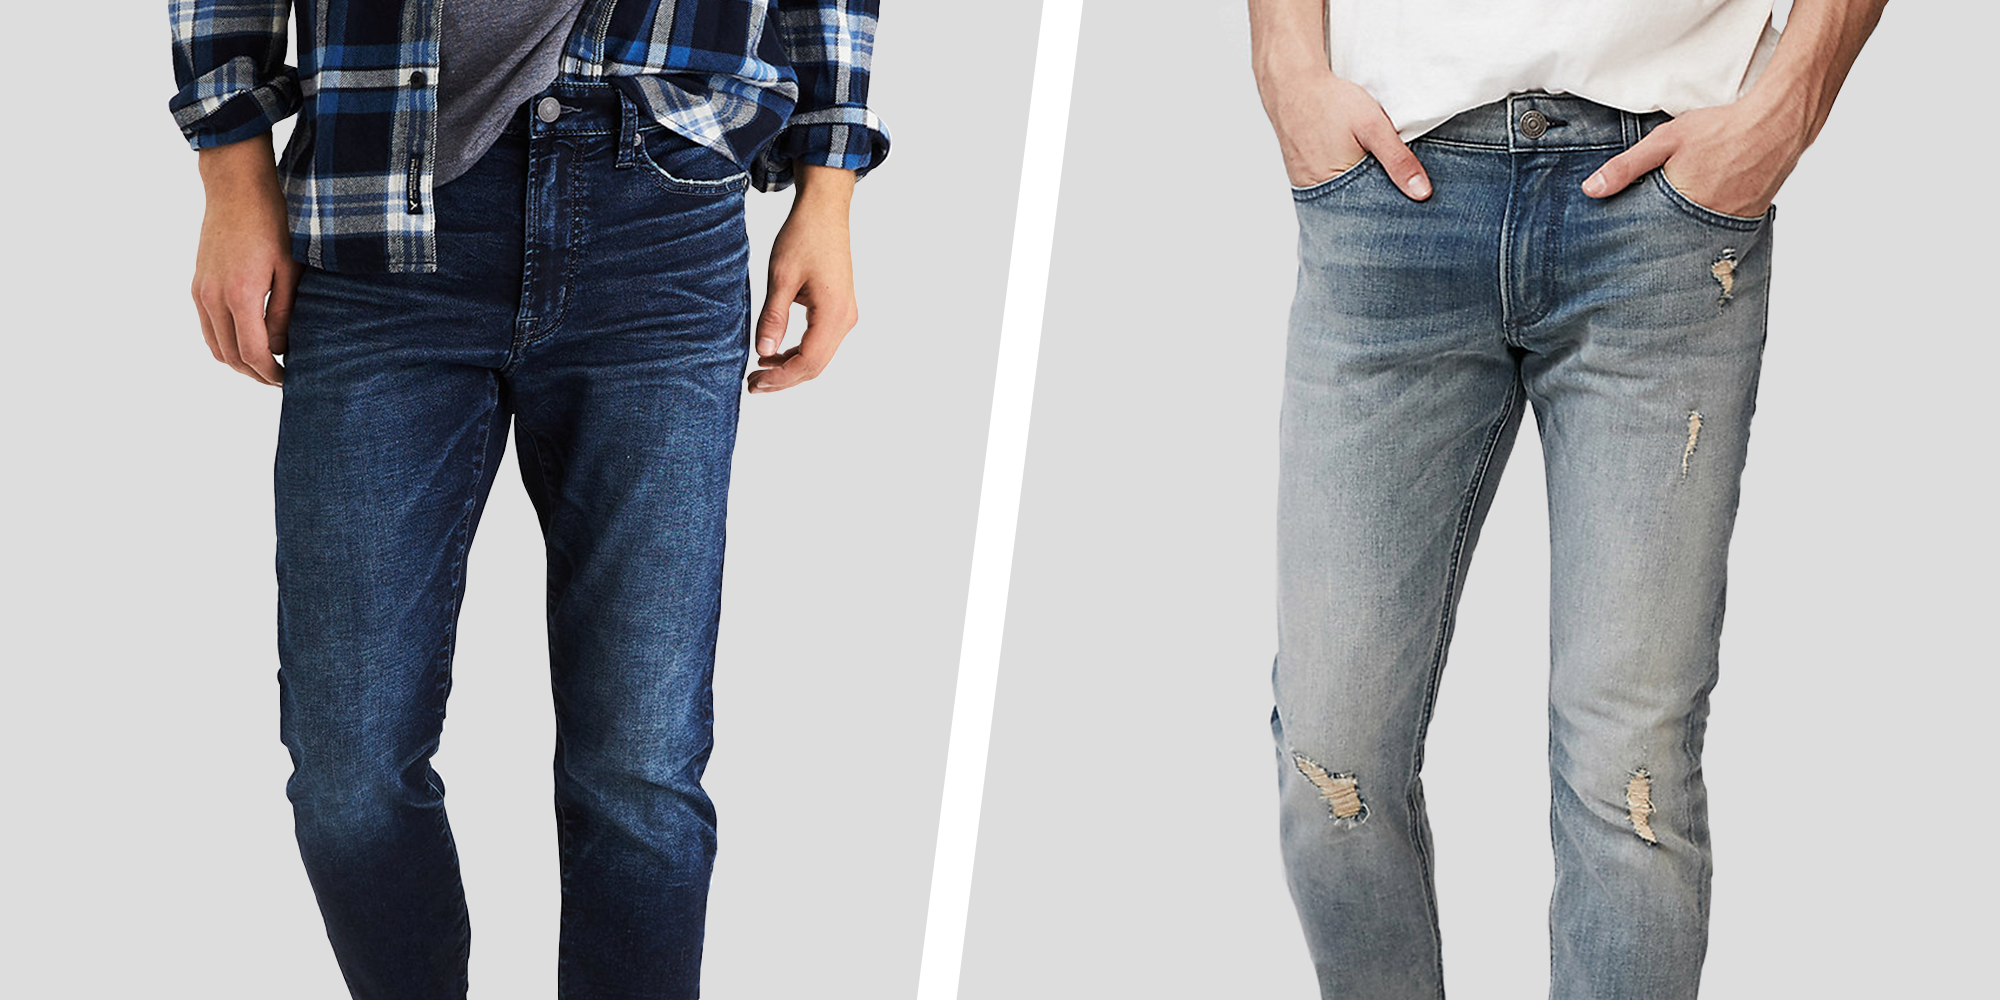 Best jeans for men